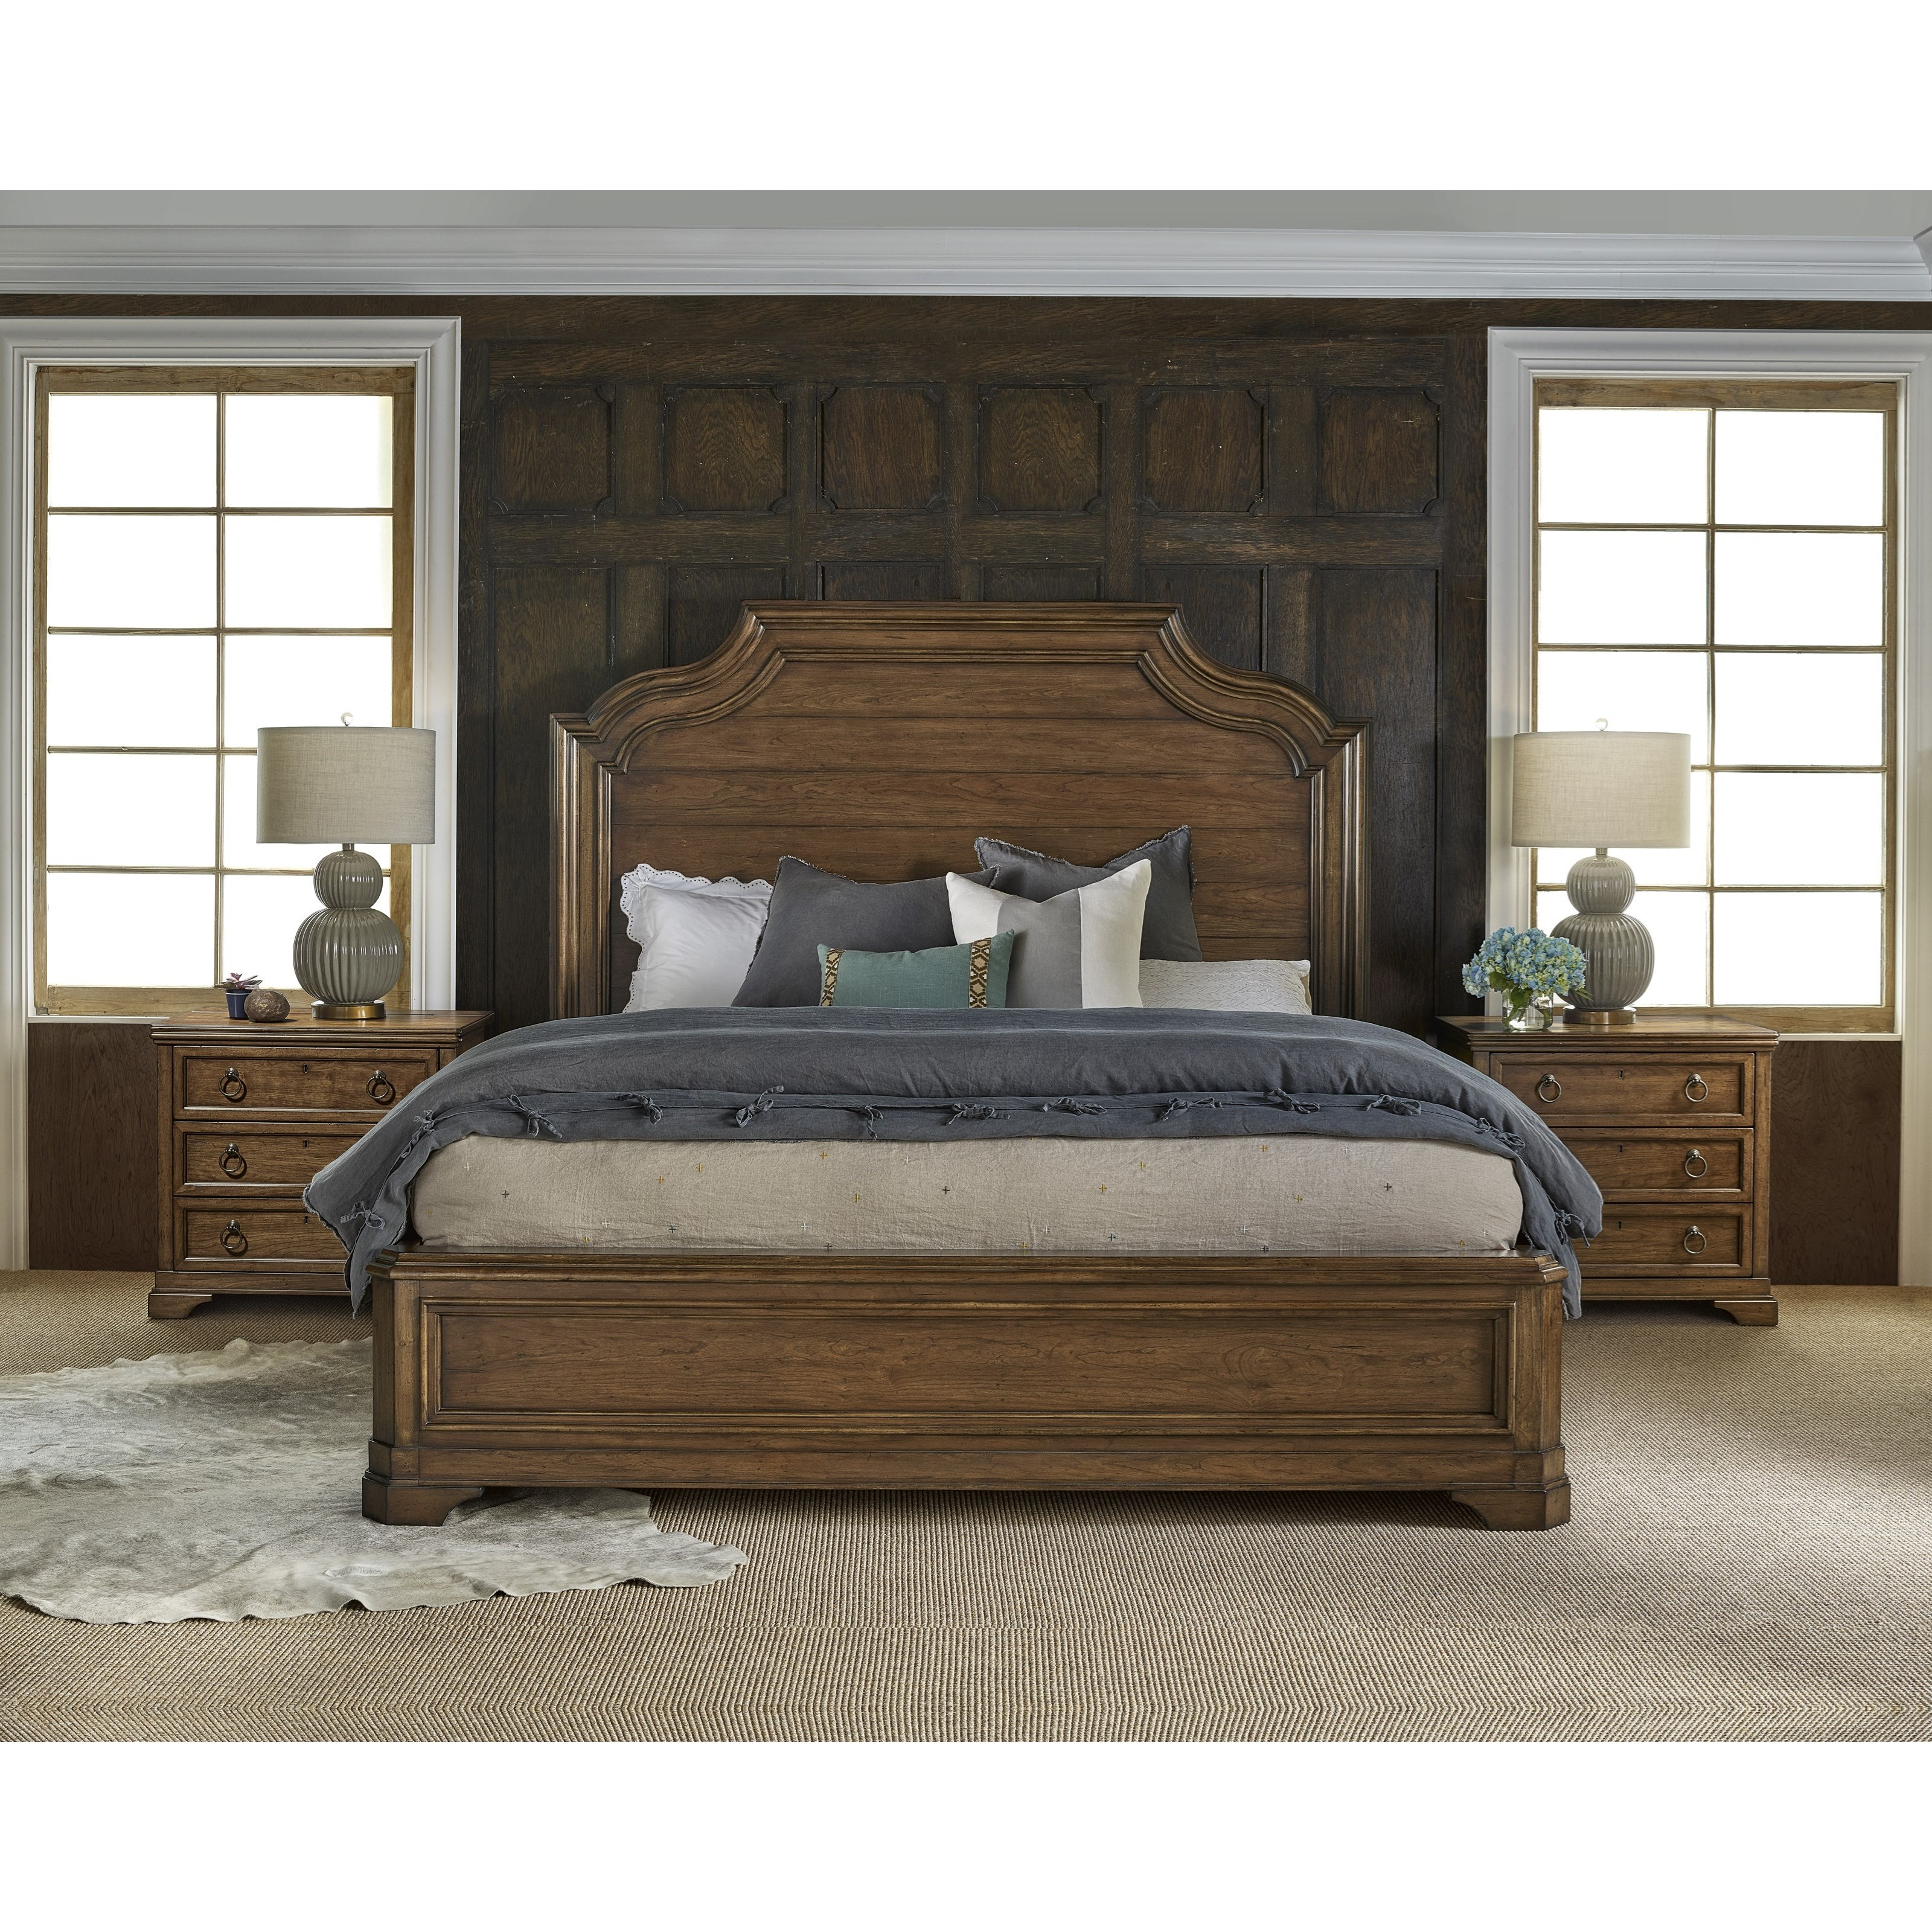 Ardmore King Bedroom Group by Universal at Baer's Furniture